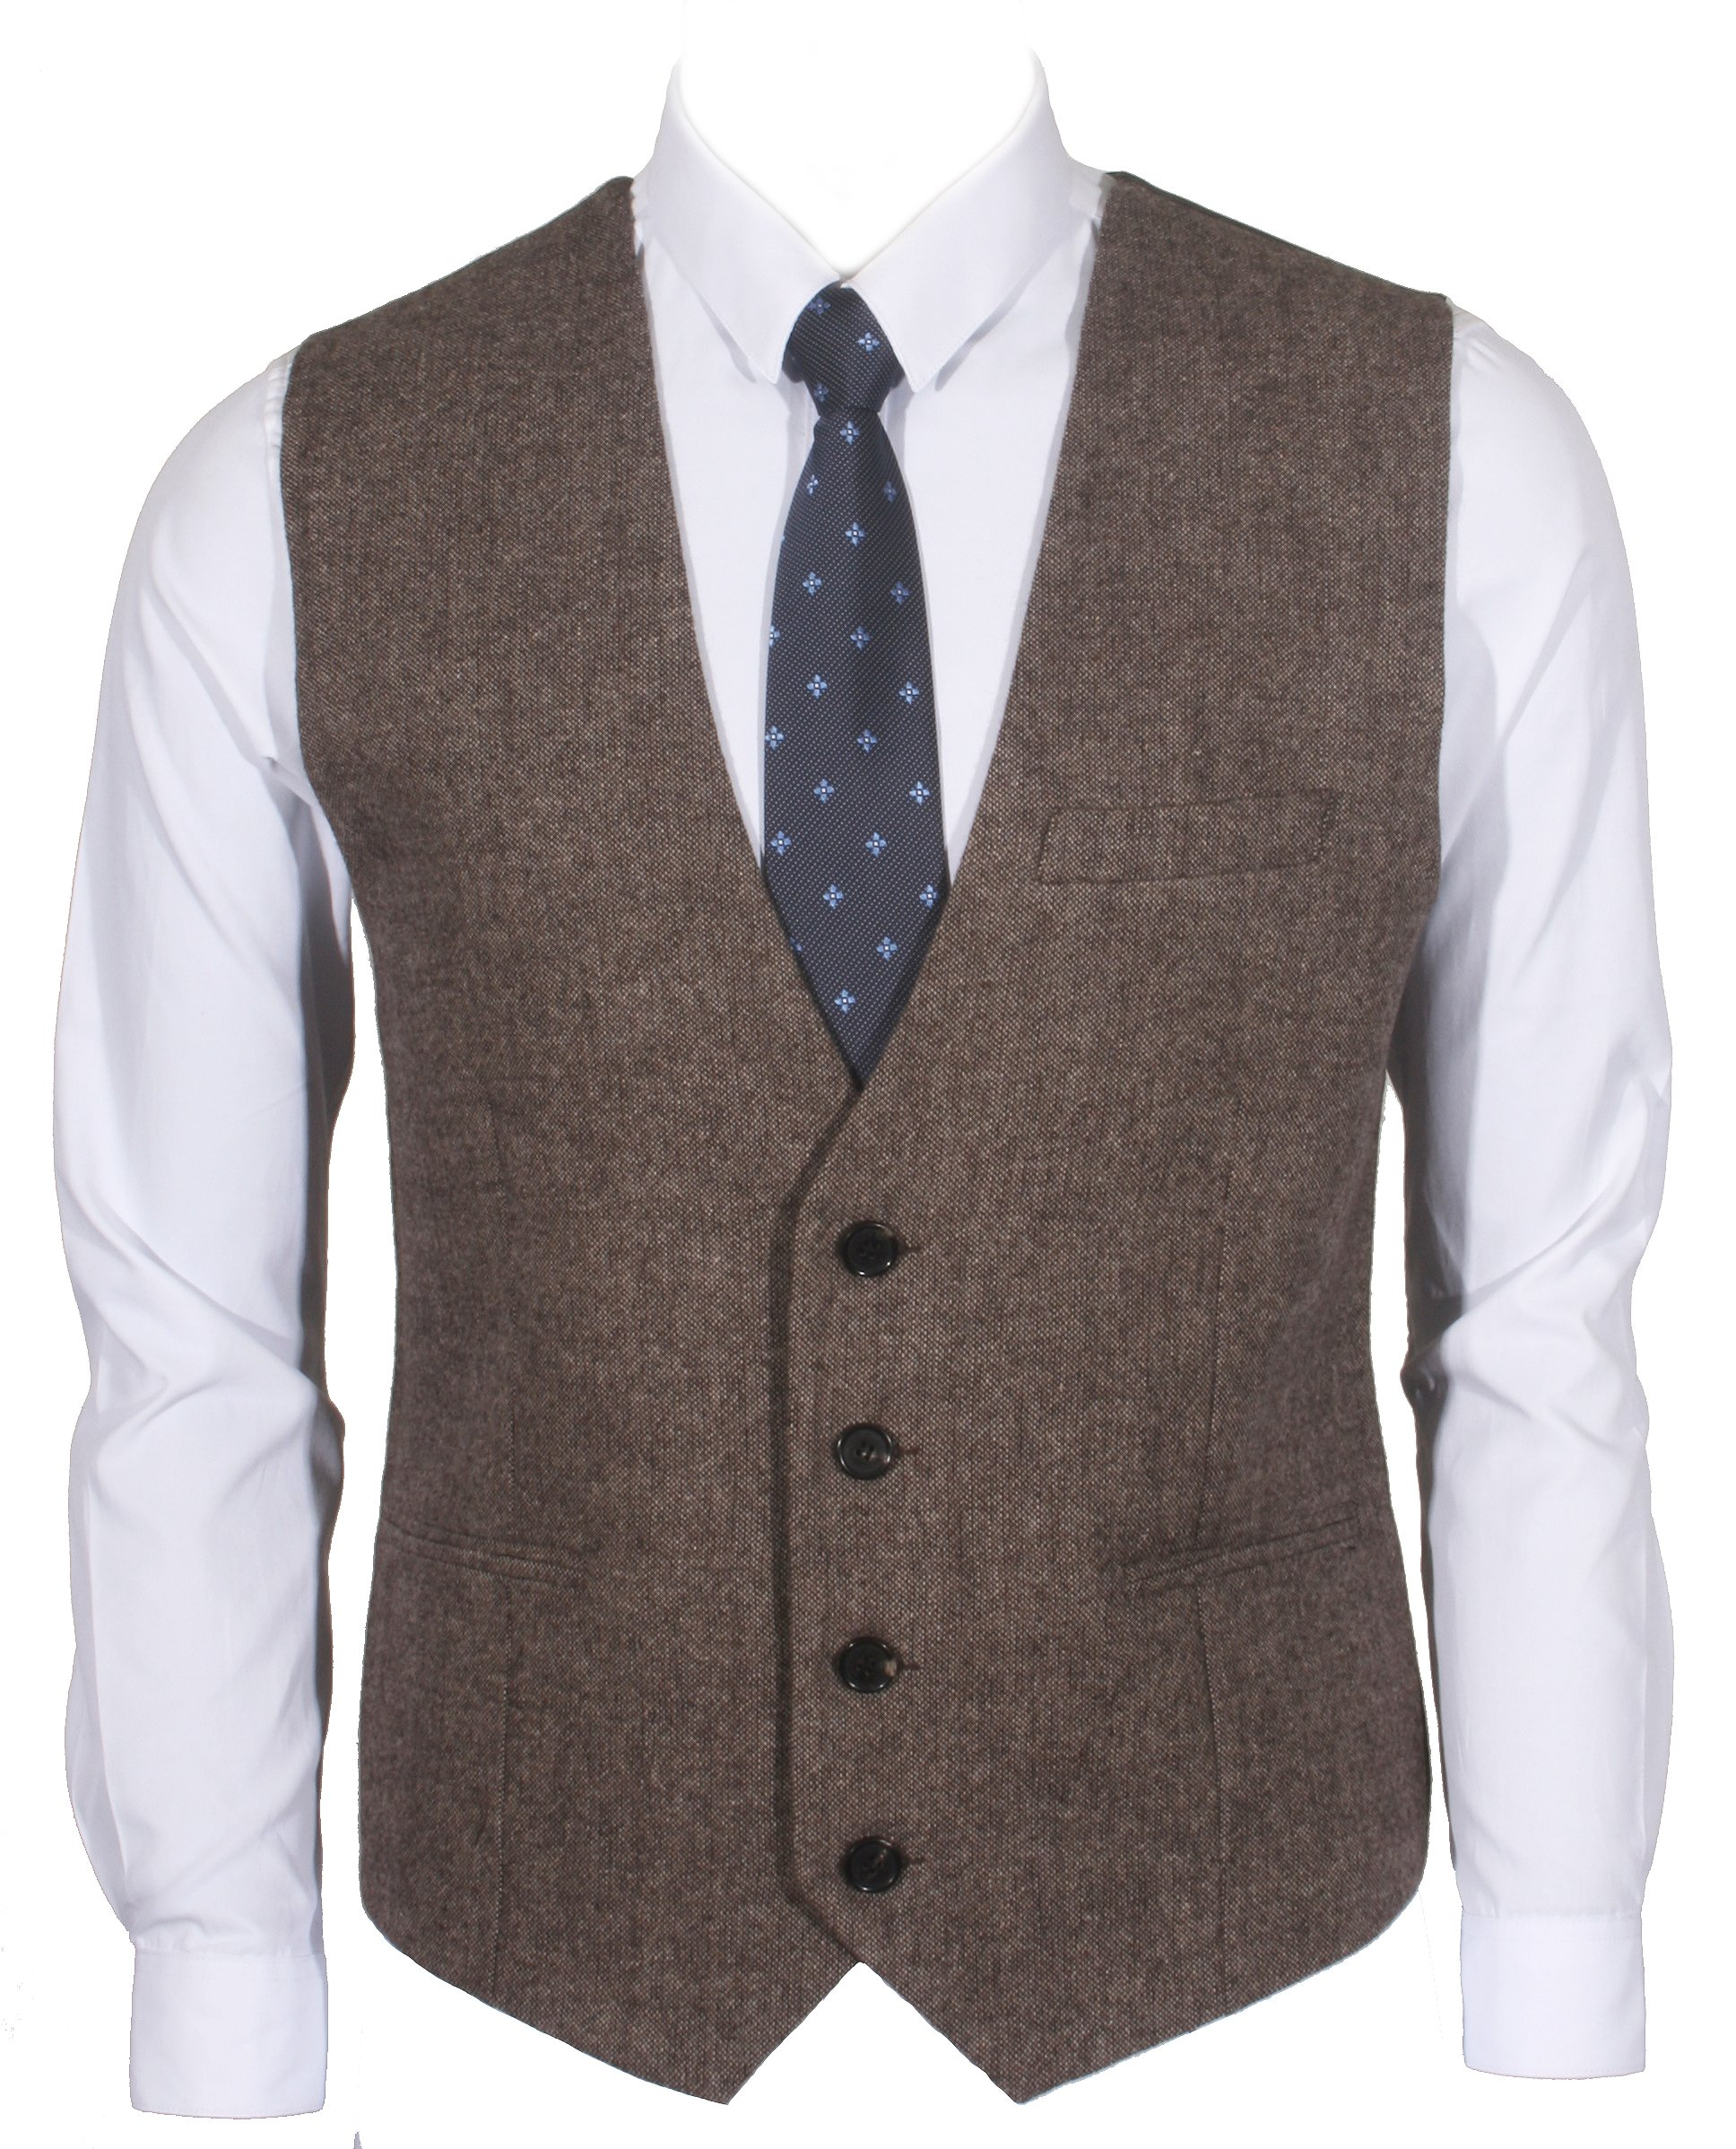 Ruth&Boaz 3Pockets 4Buttons Wool Herringbone / Tweed Business Suit Vest (L, Tweed Brown)